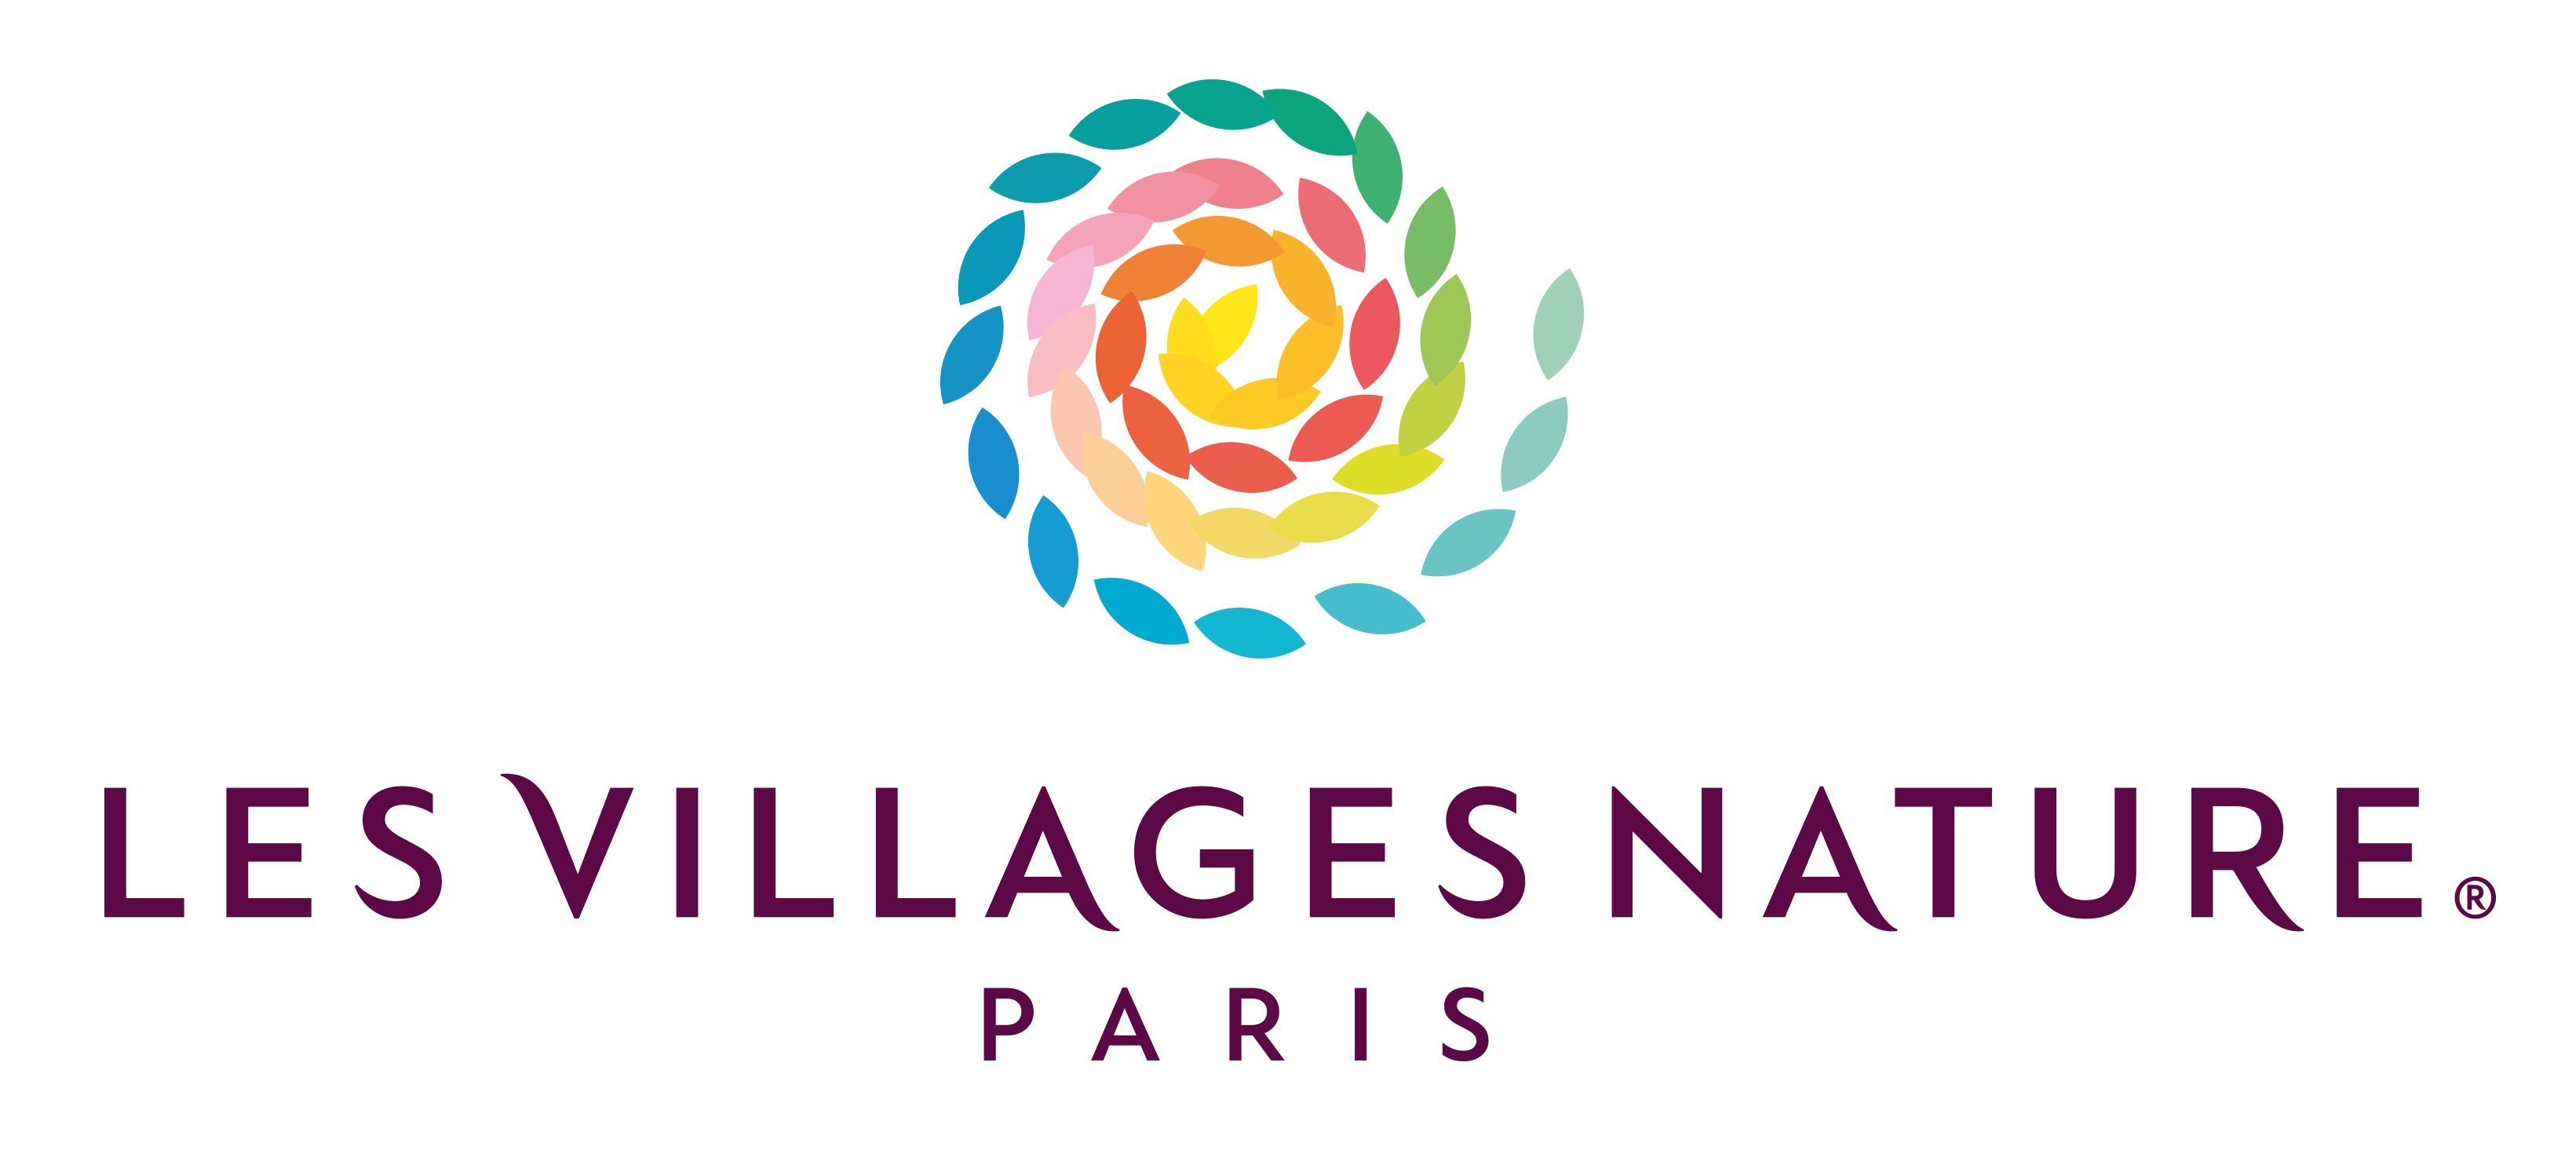 Les Village Nature